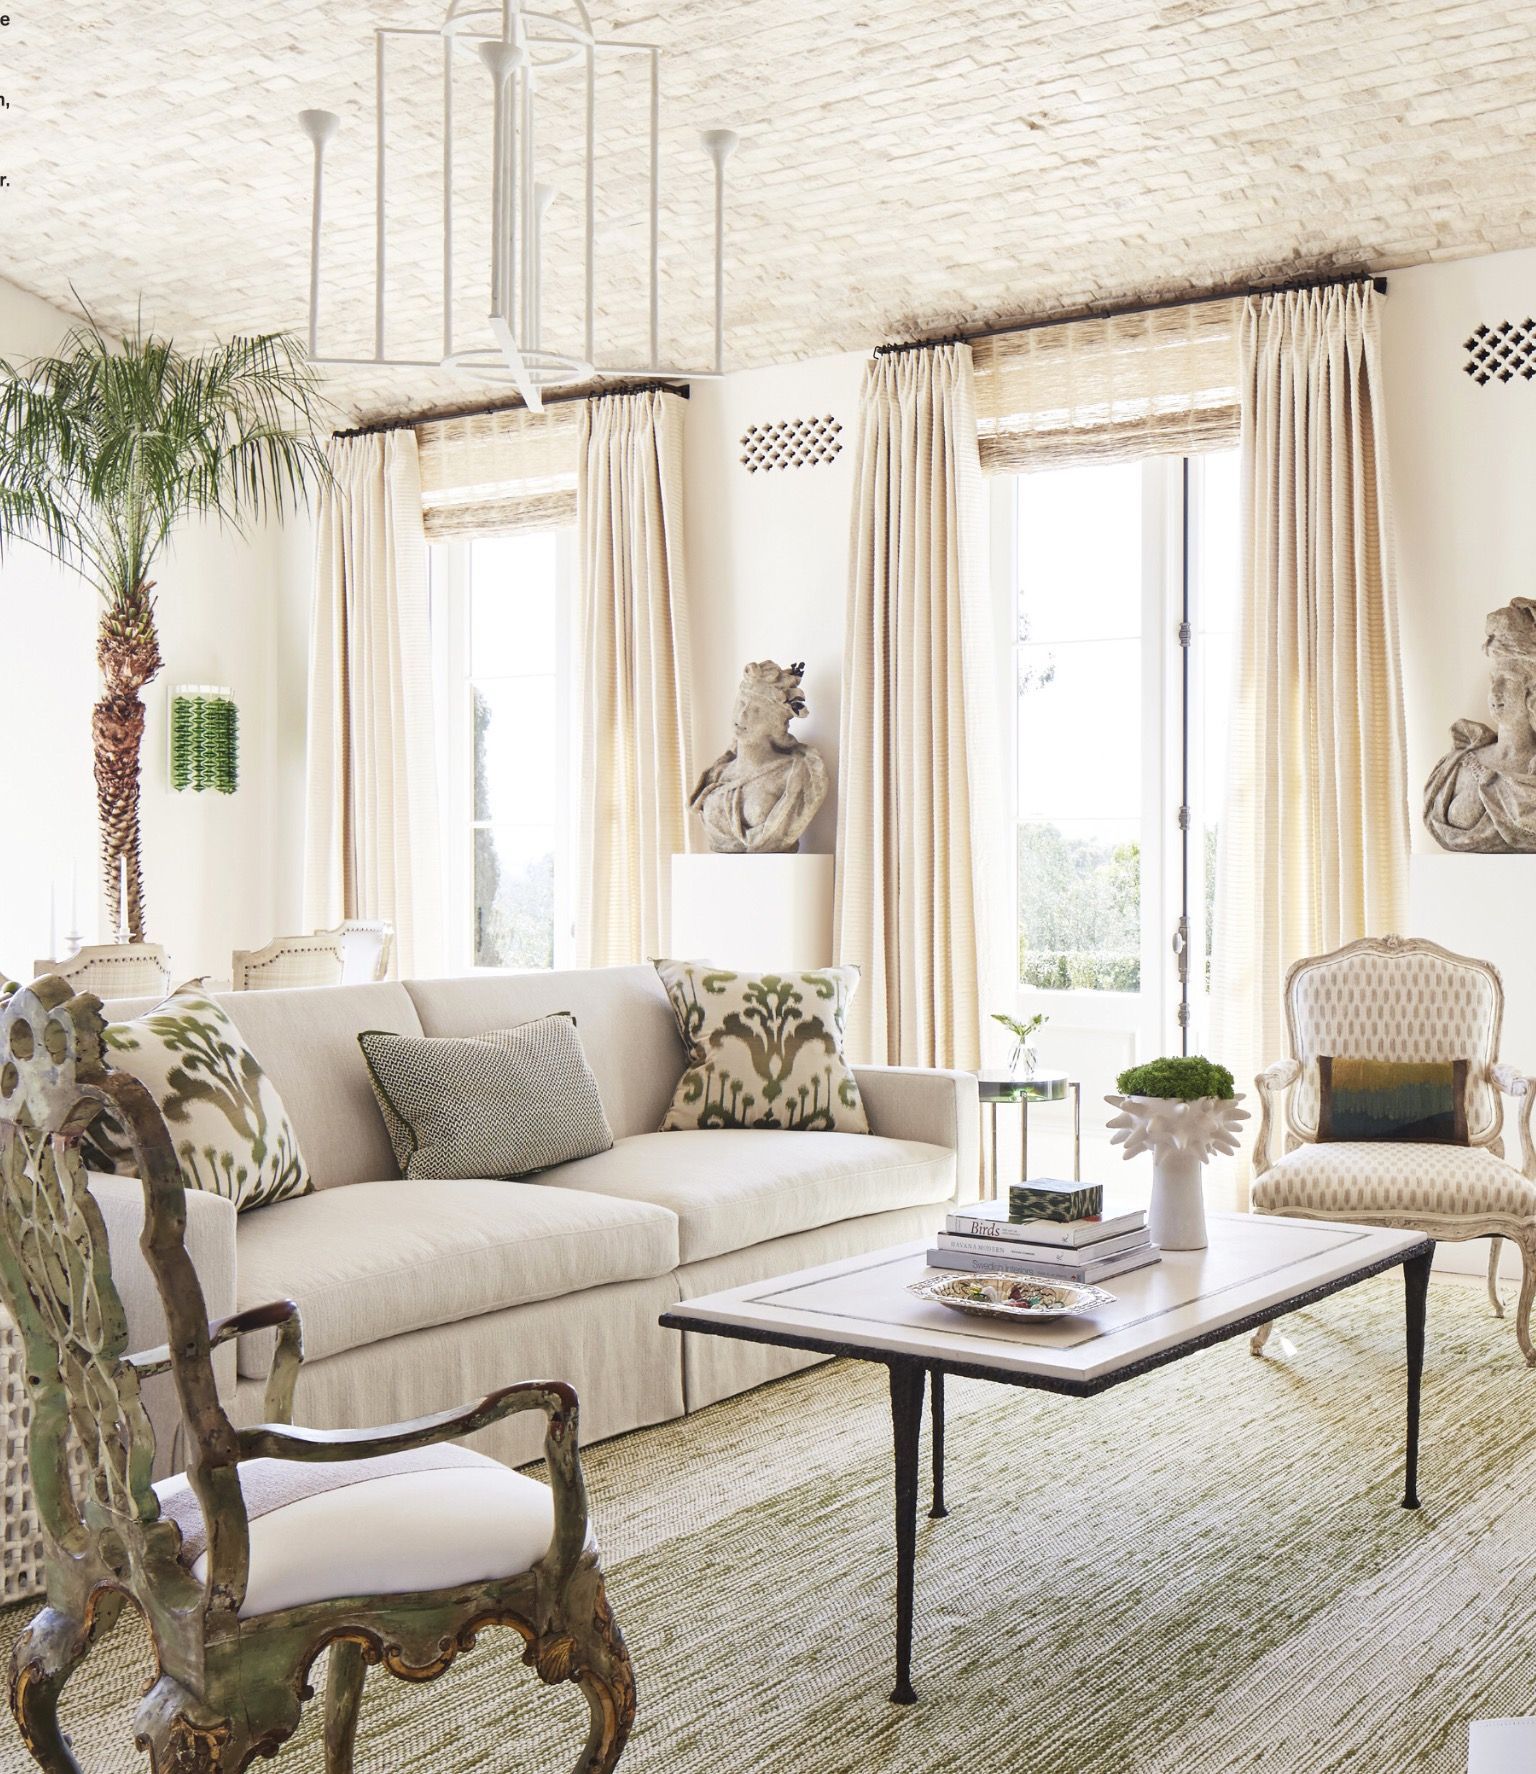 Home Design And Interior Decorating Is What Veranda Magazine Is